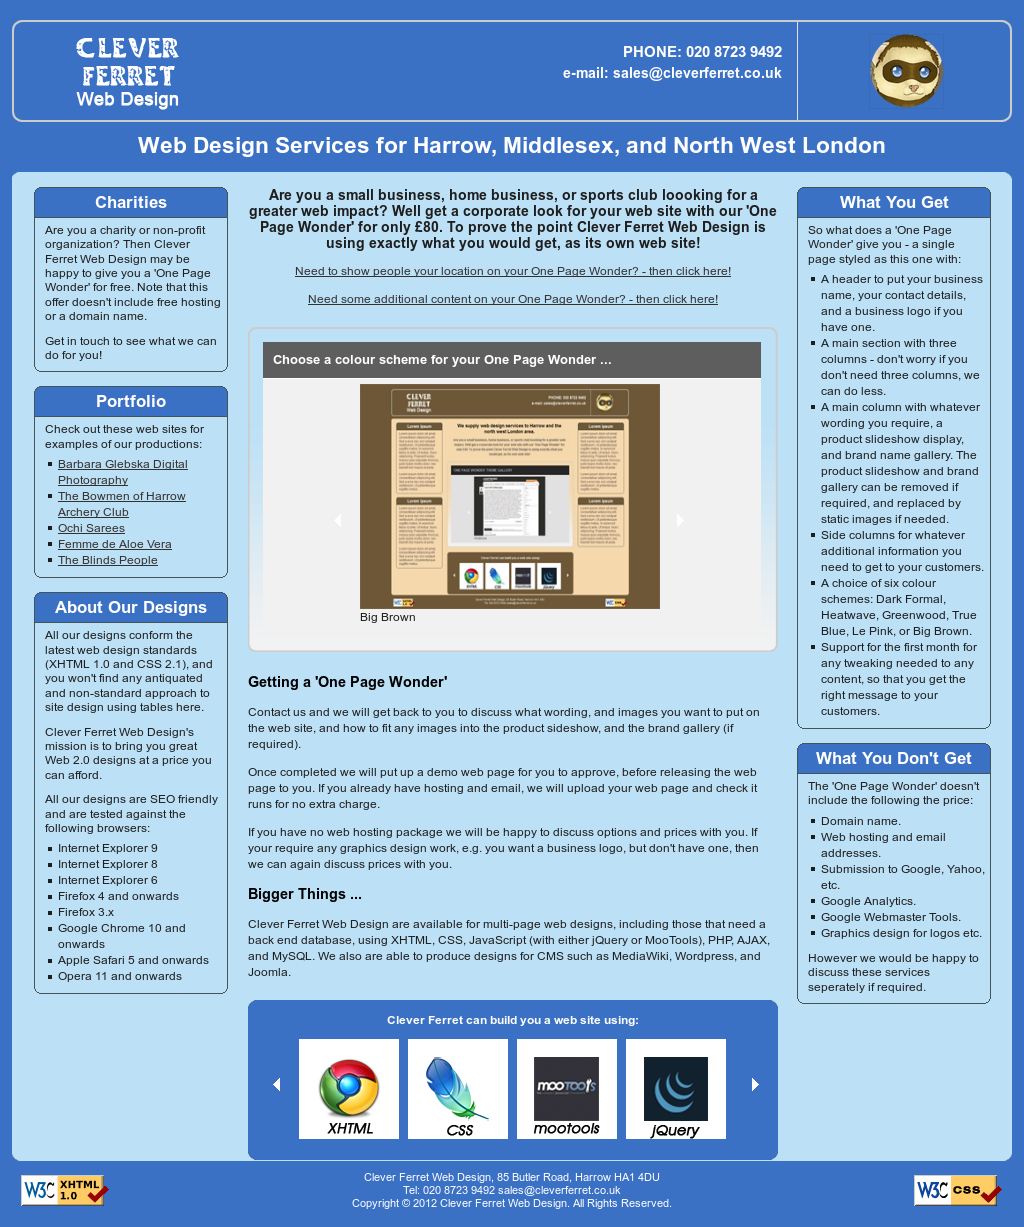 Cleverferret Web Design Competitors, Revenue and Employees